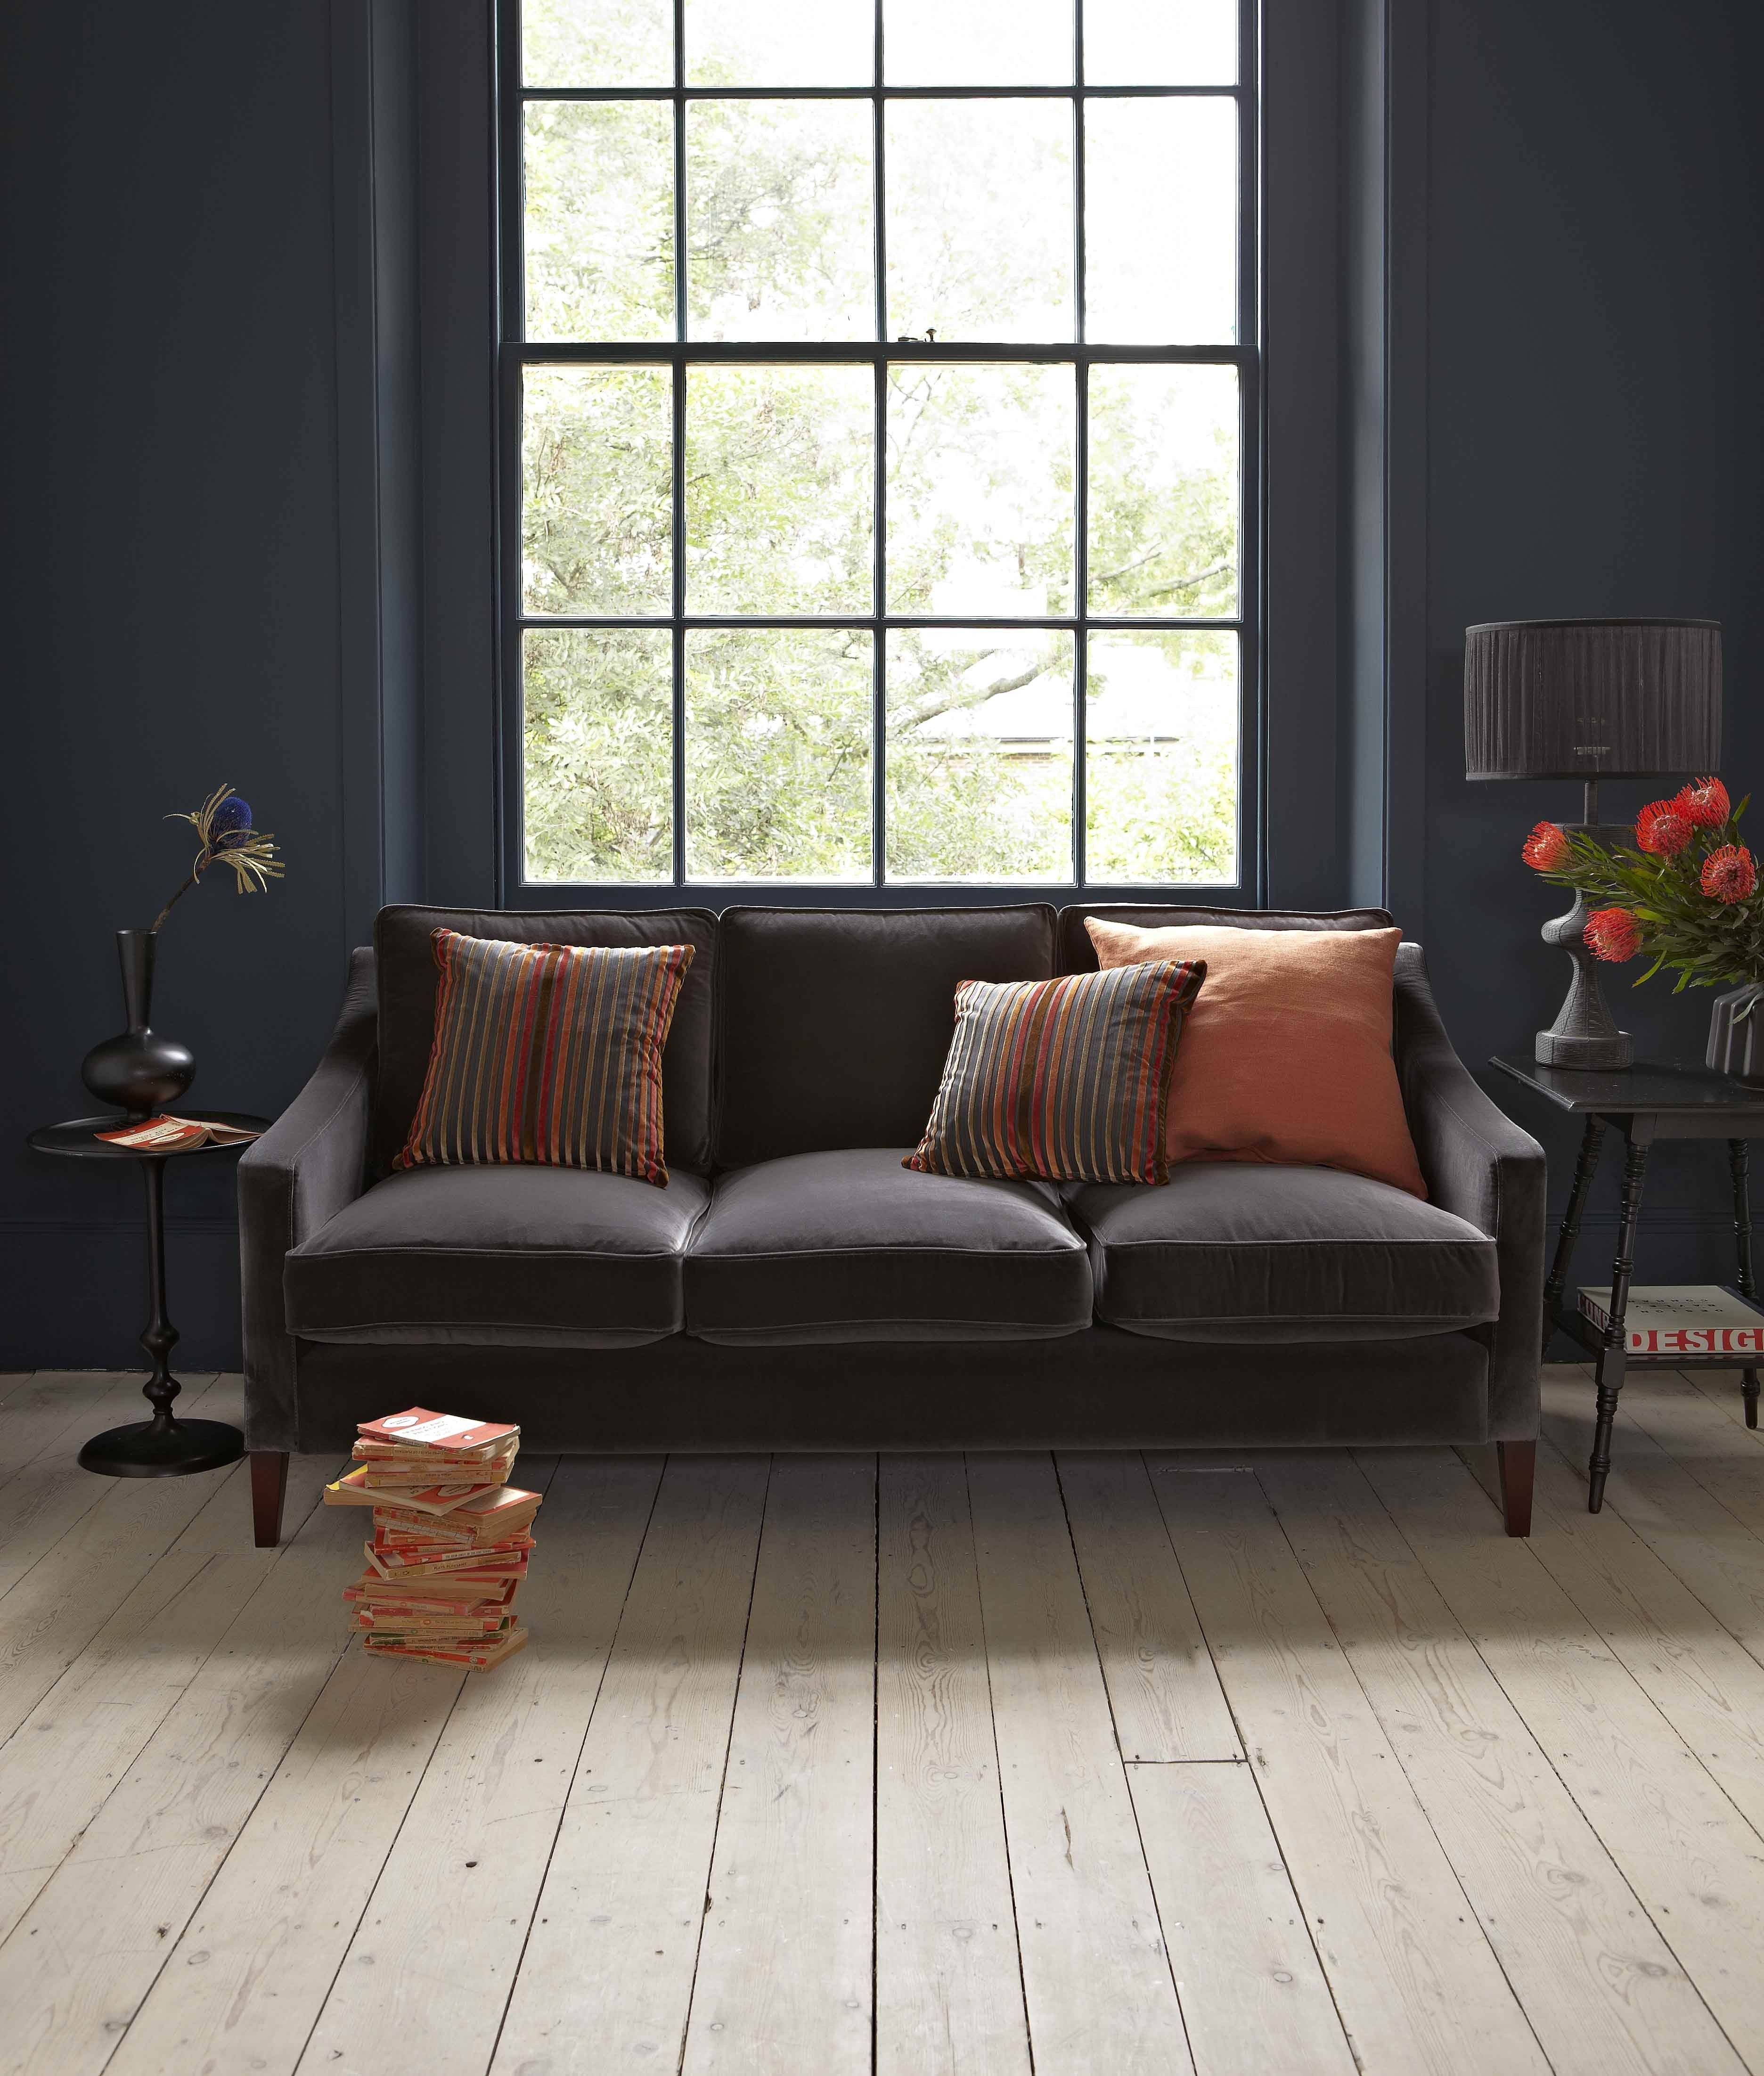 Charming Iggy Three Seat Sofa In Cotton Matt Velvet U0027Elephantu0027 £1,310 Http:/